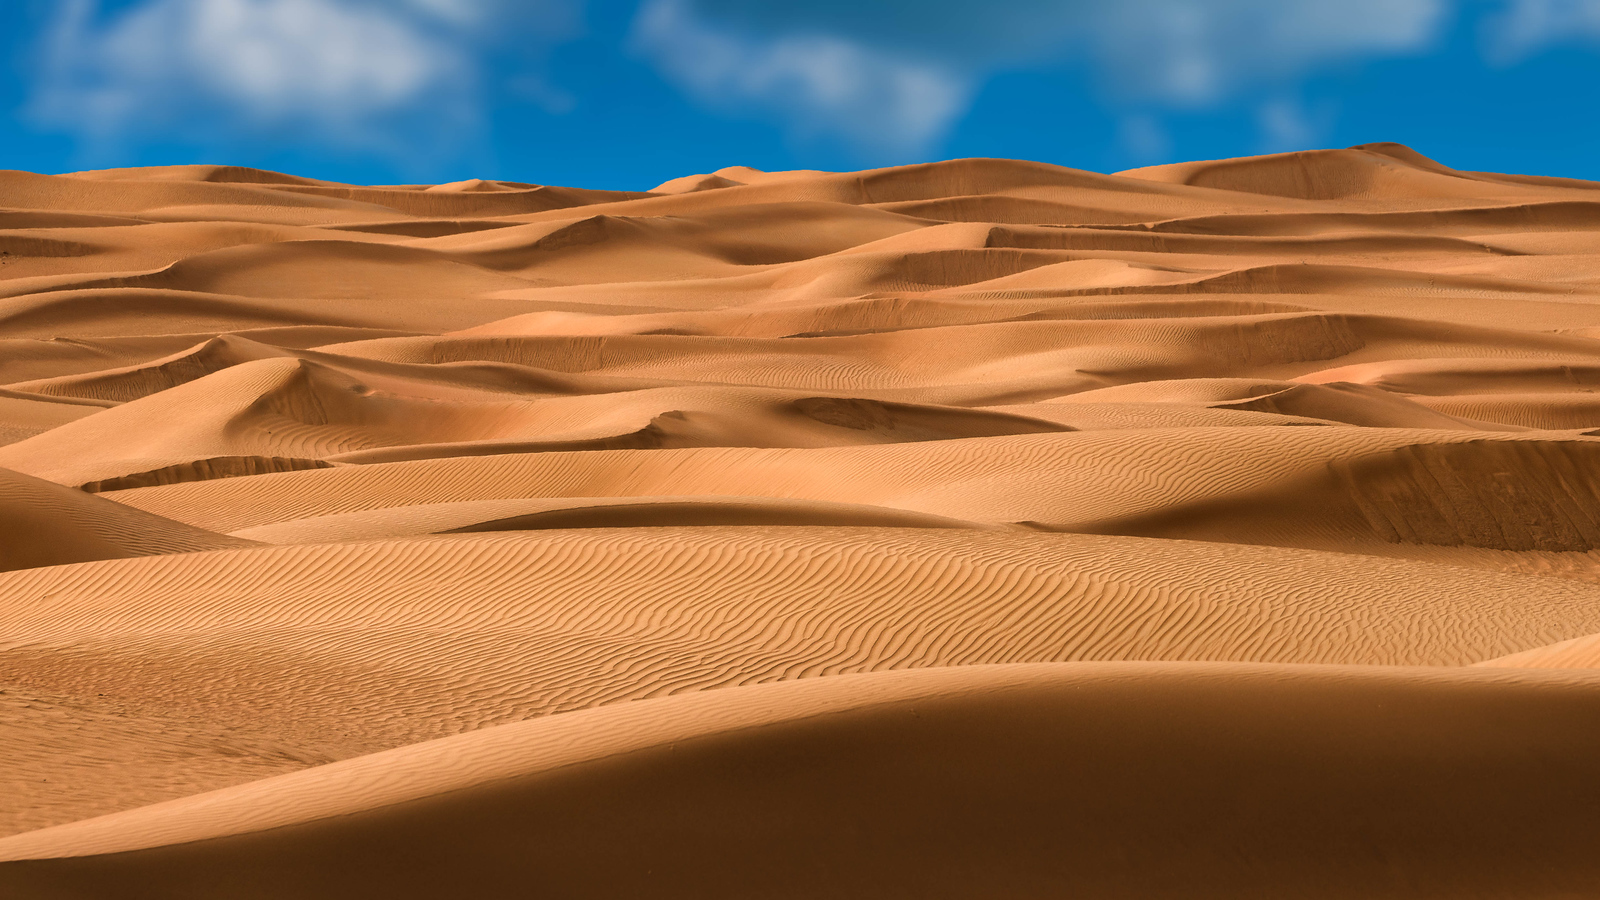 The dunes of the Dubai Desert